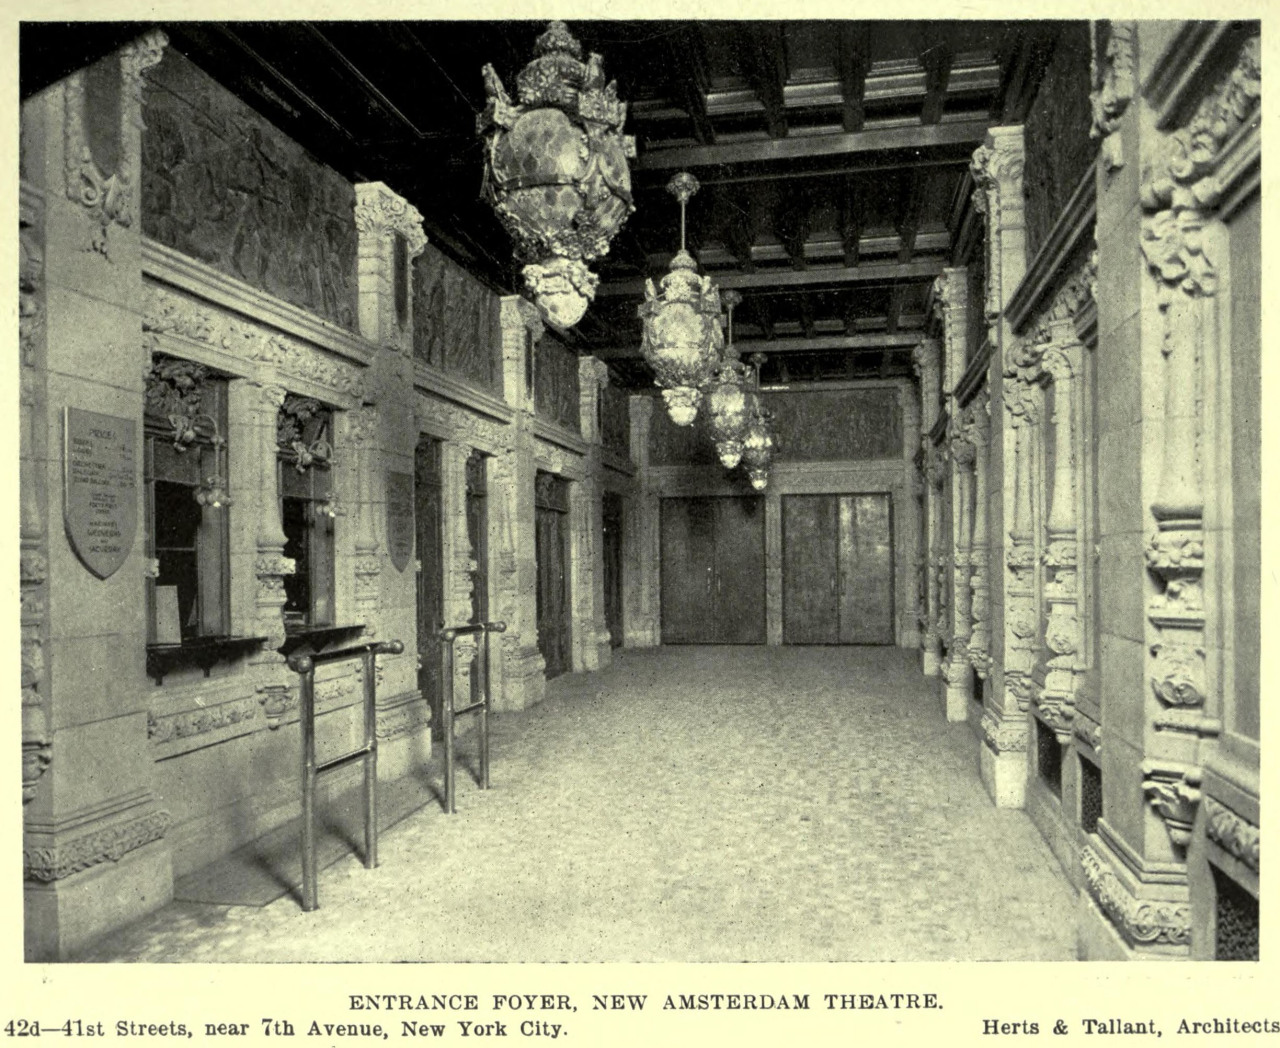 Inside the entrance foyer of the New Amsterdam Theatre, New York City